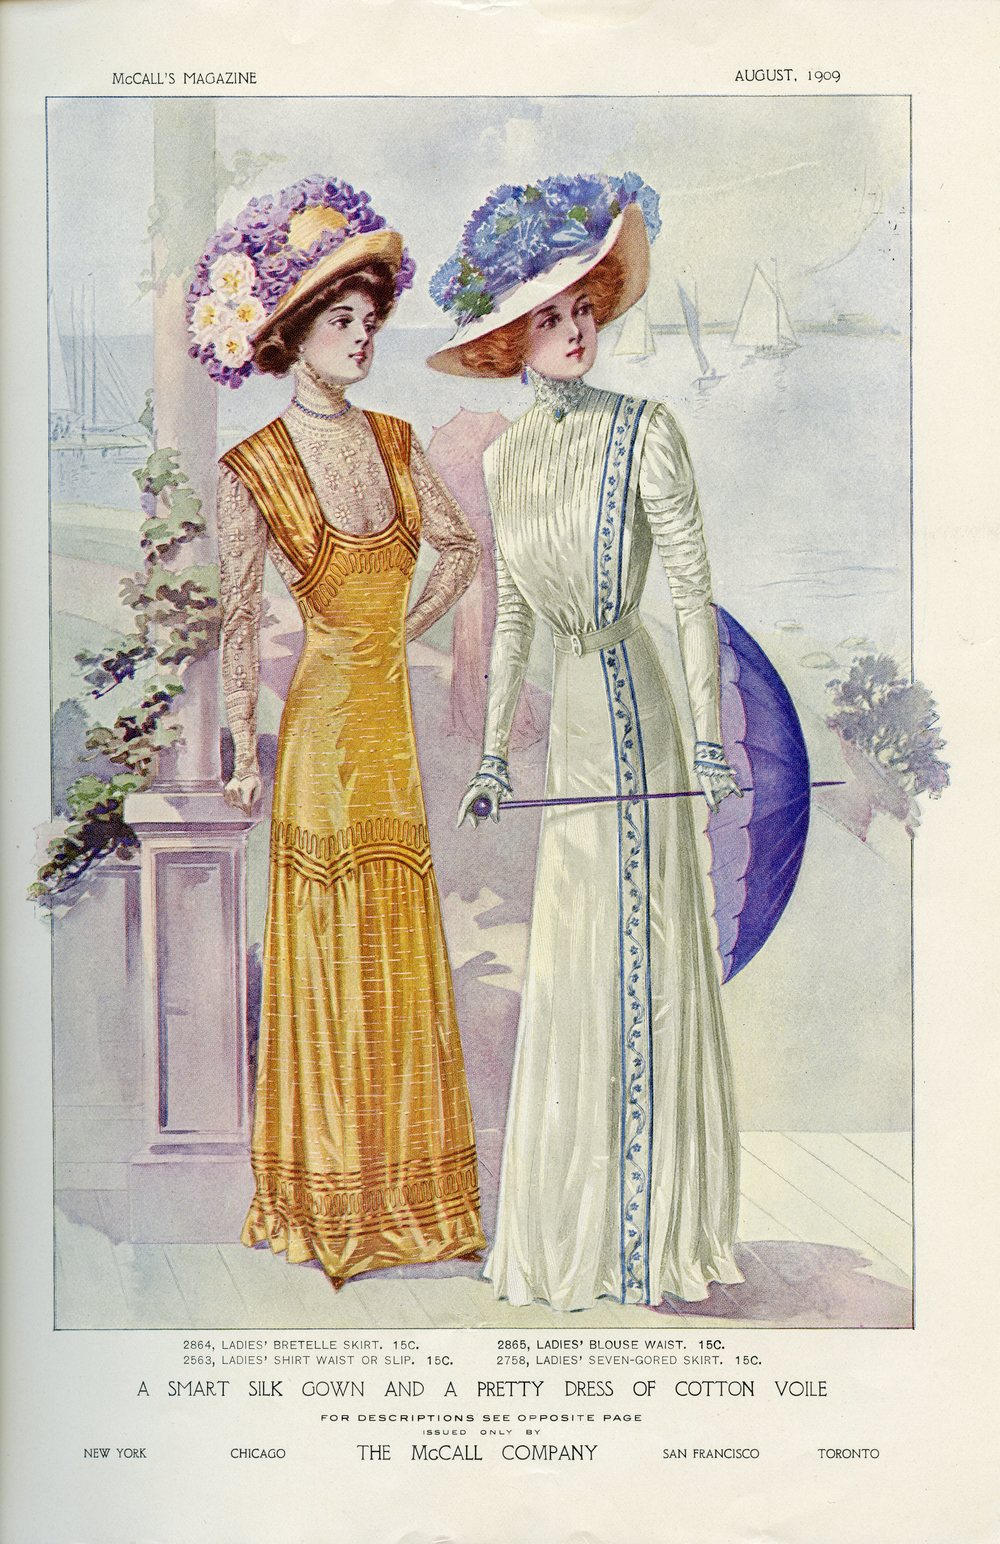 Giant Hats 600 DPi McCalls 1909.jpg